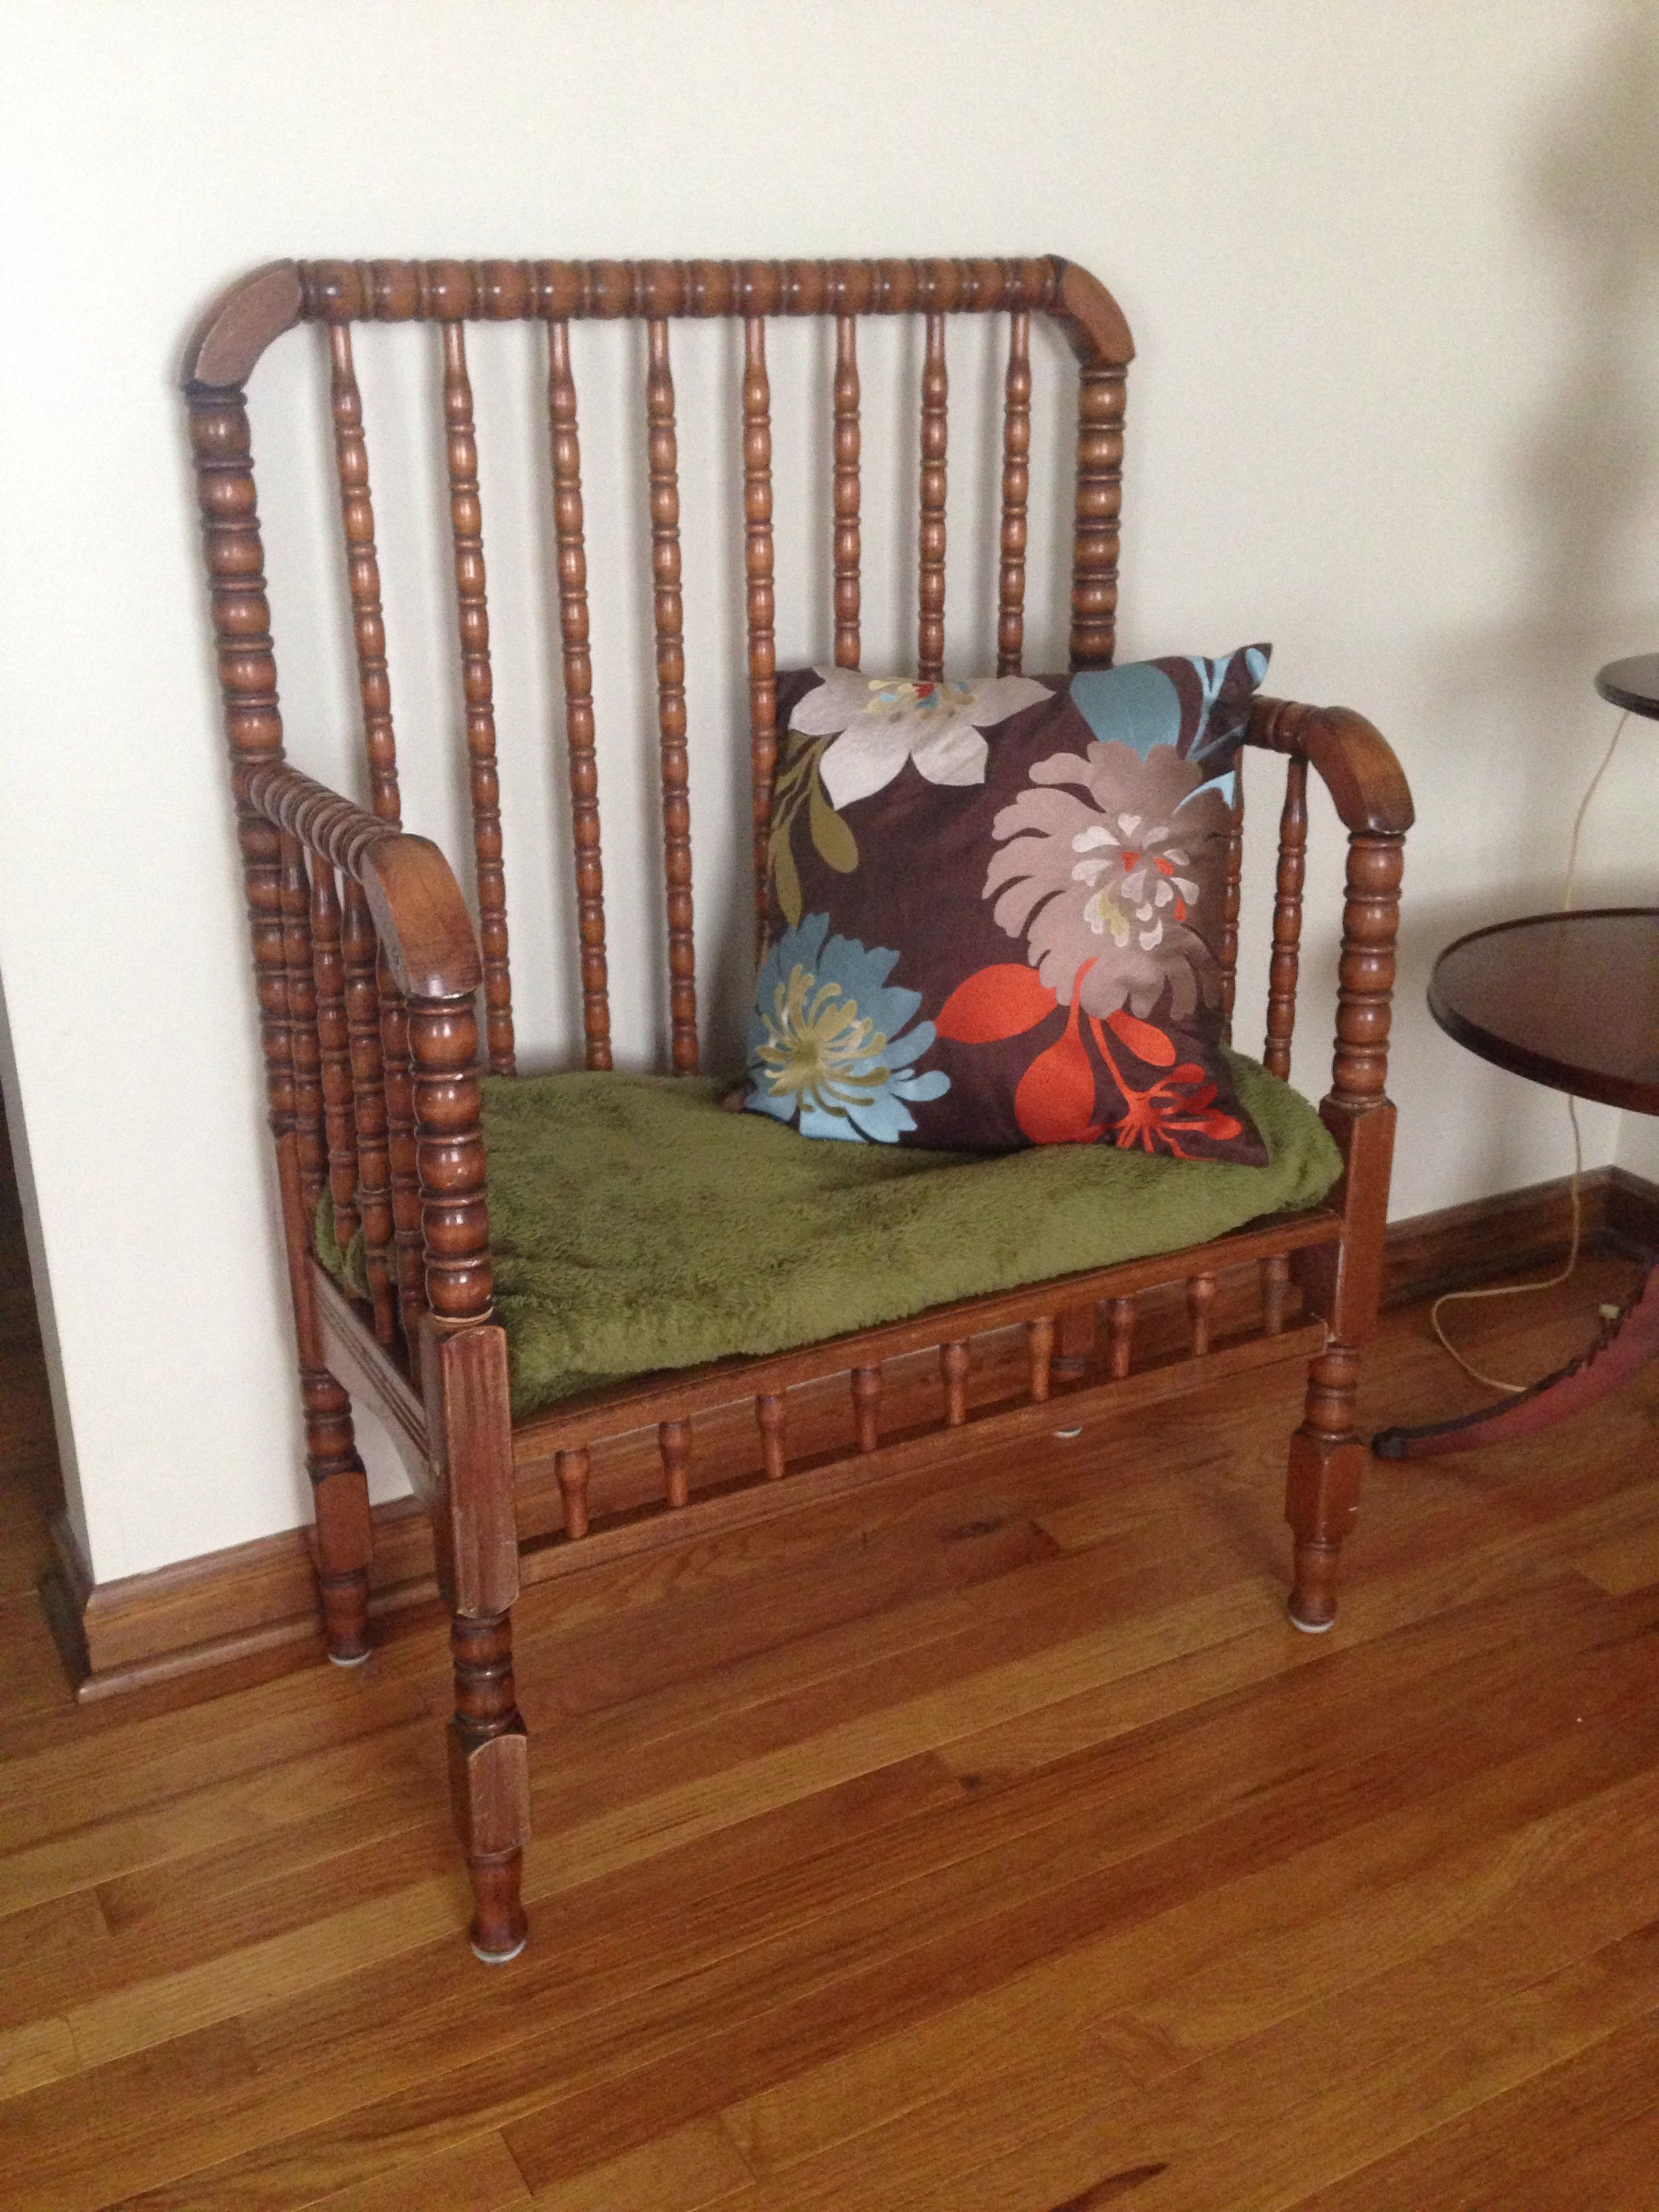 Awesome Diy Turn Your Old Baby Crib Into A Bench Seat My Dad Made Caraccident5 Cool Chair Designs And Ideas Caraccident5Info